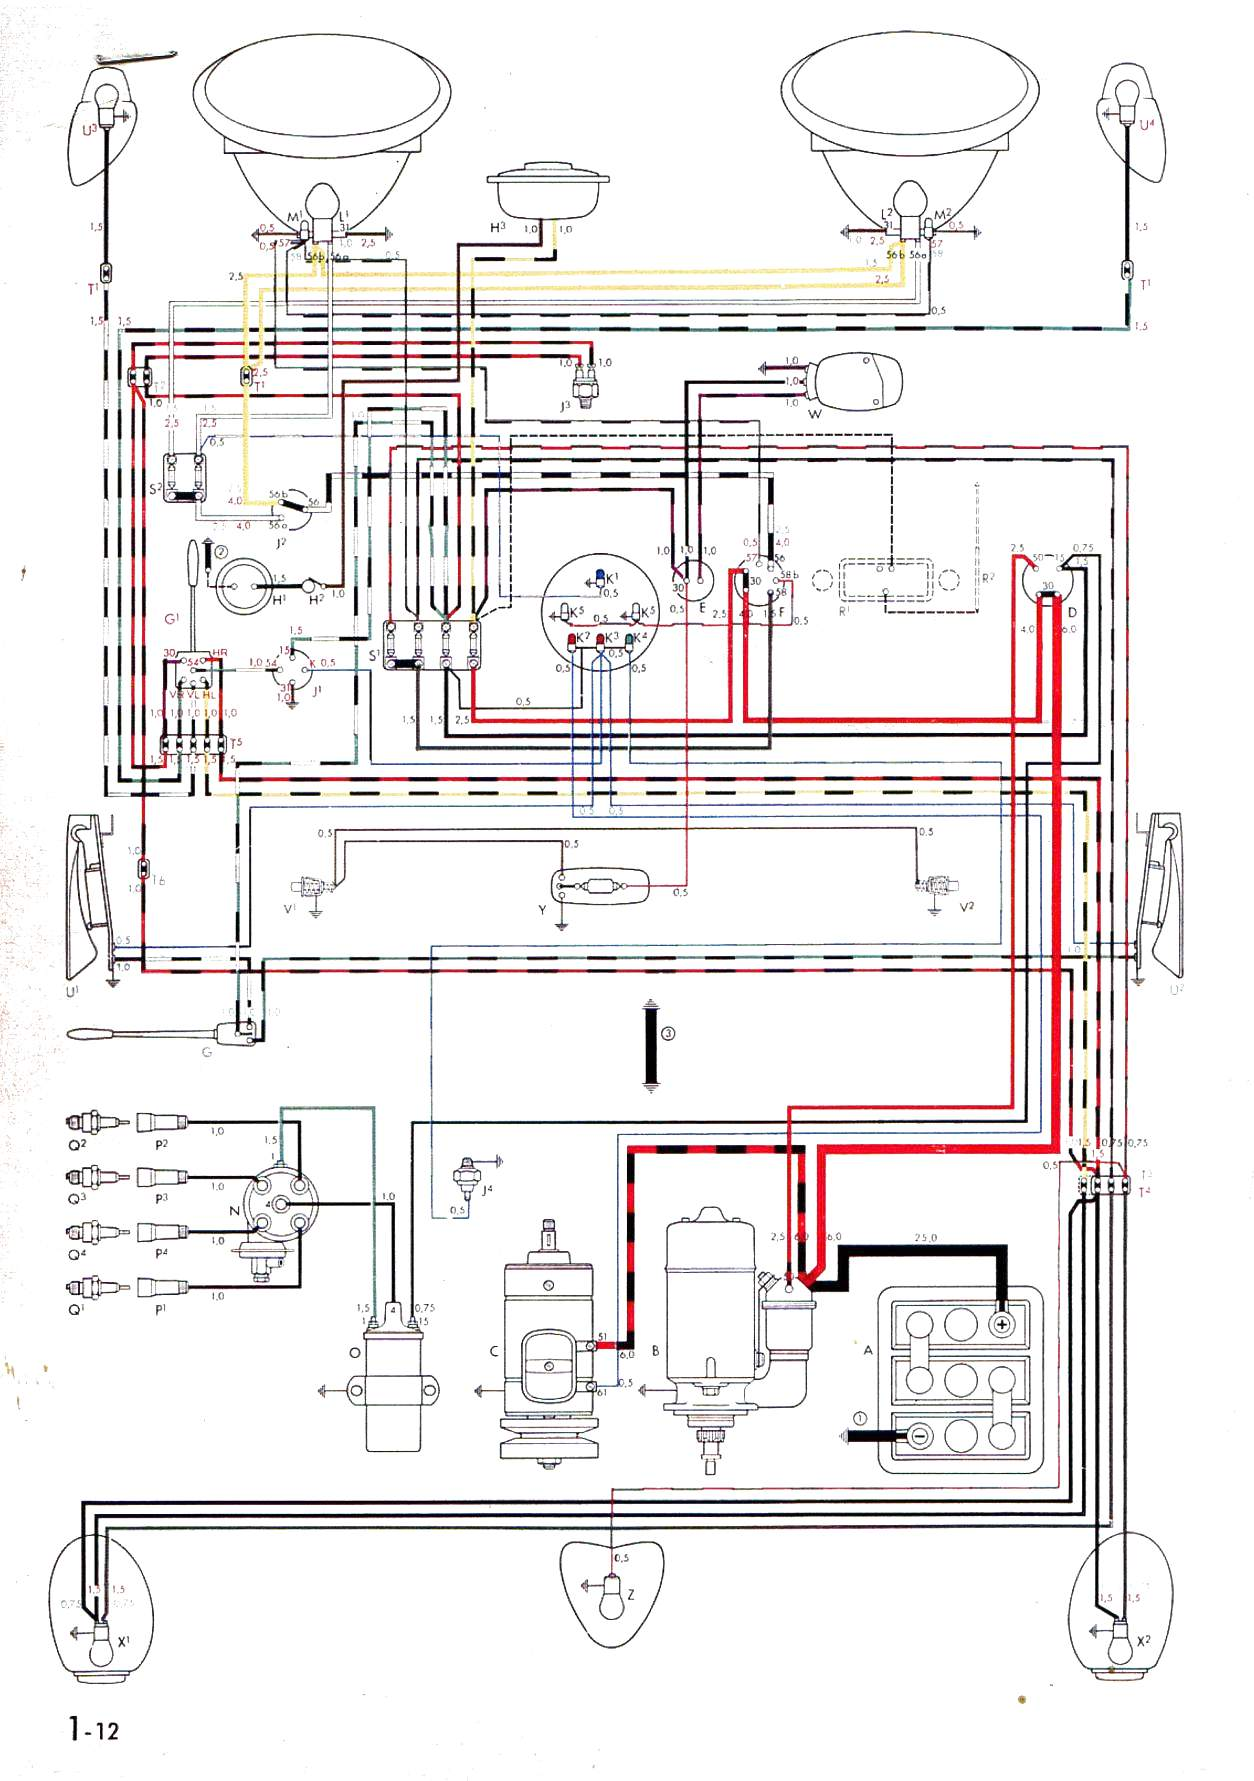 bug 55 57 vw wiring diagrams 1957 vw bug wiring diagram at soozxer.org